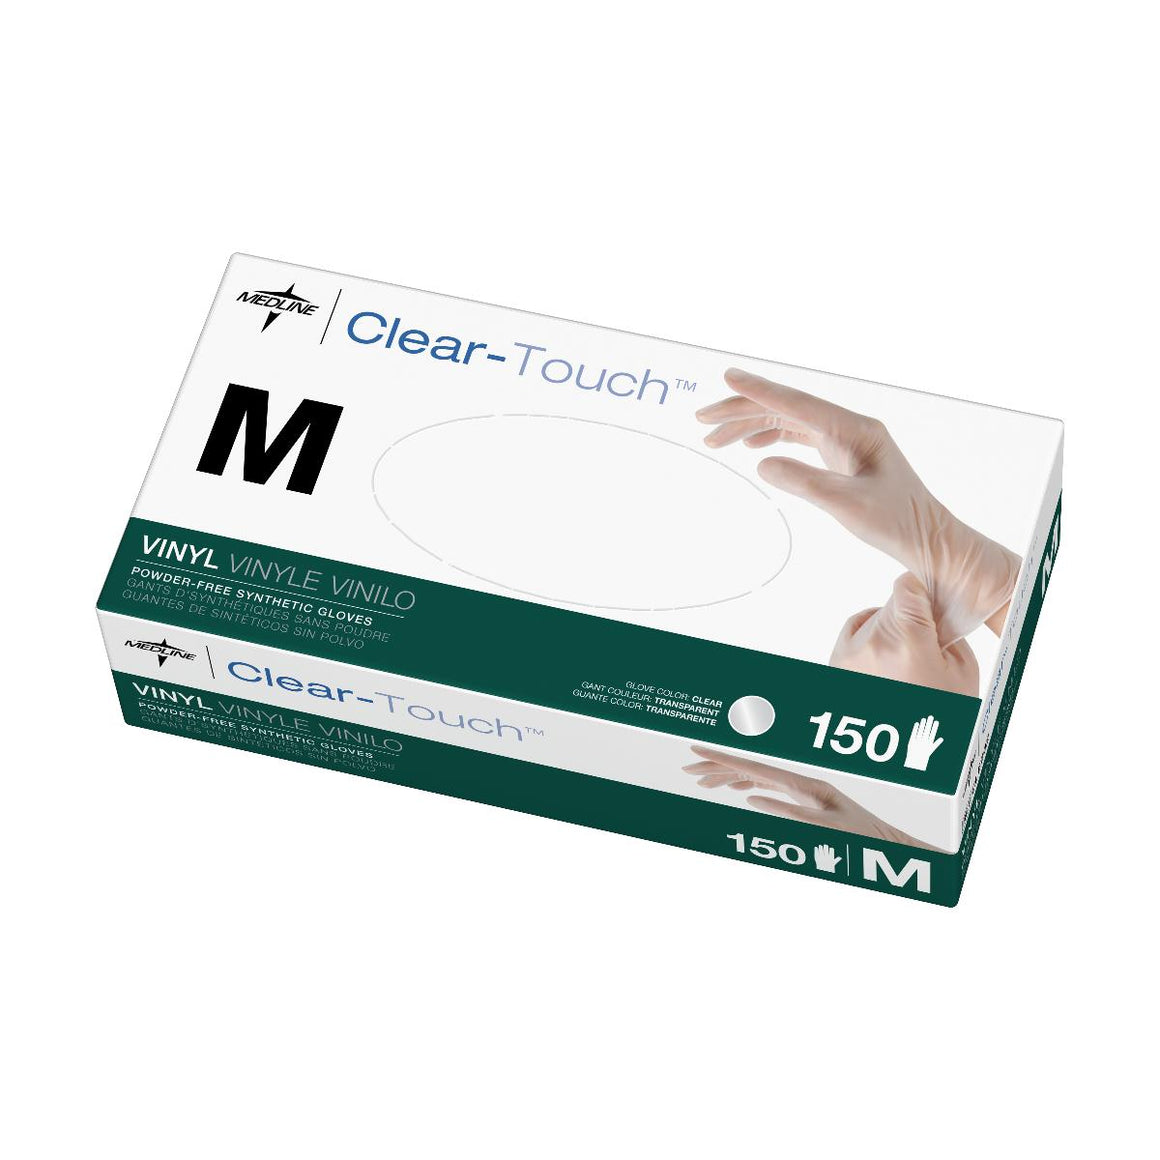 Clear-Touch Vinyl Multi-Purpose Gloves - CA Only,Medium, Case of 1500